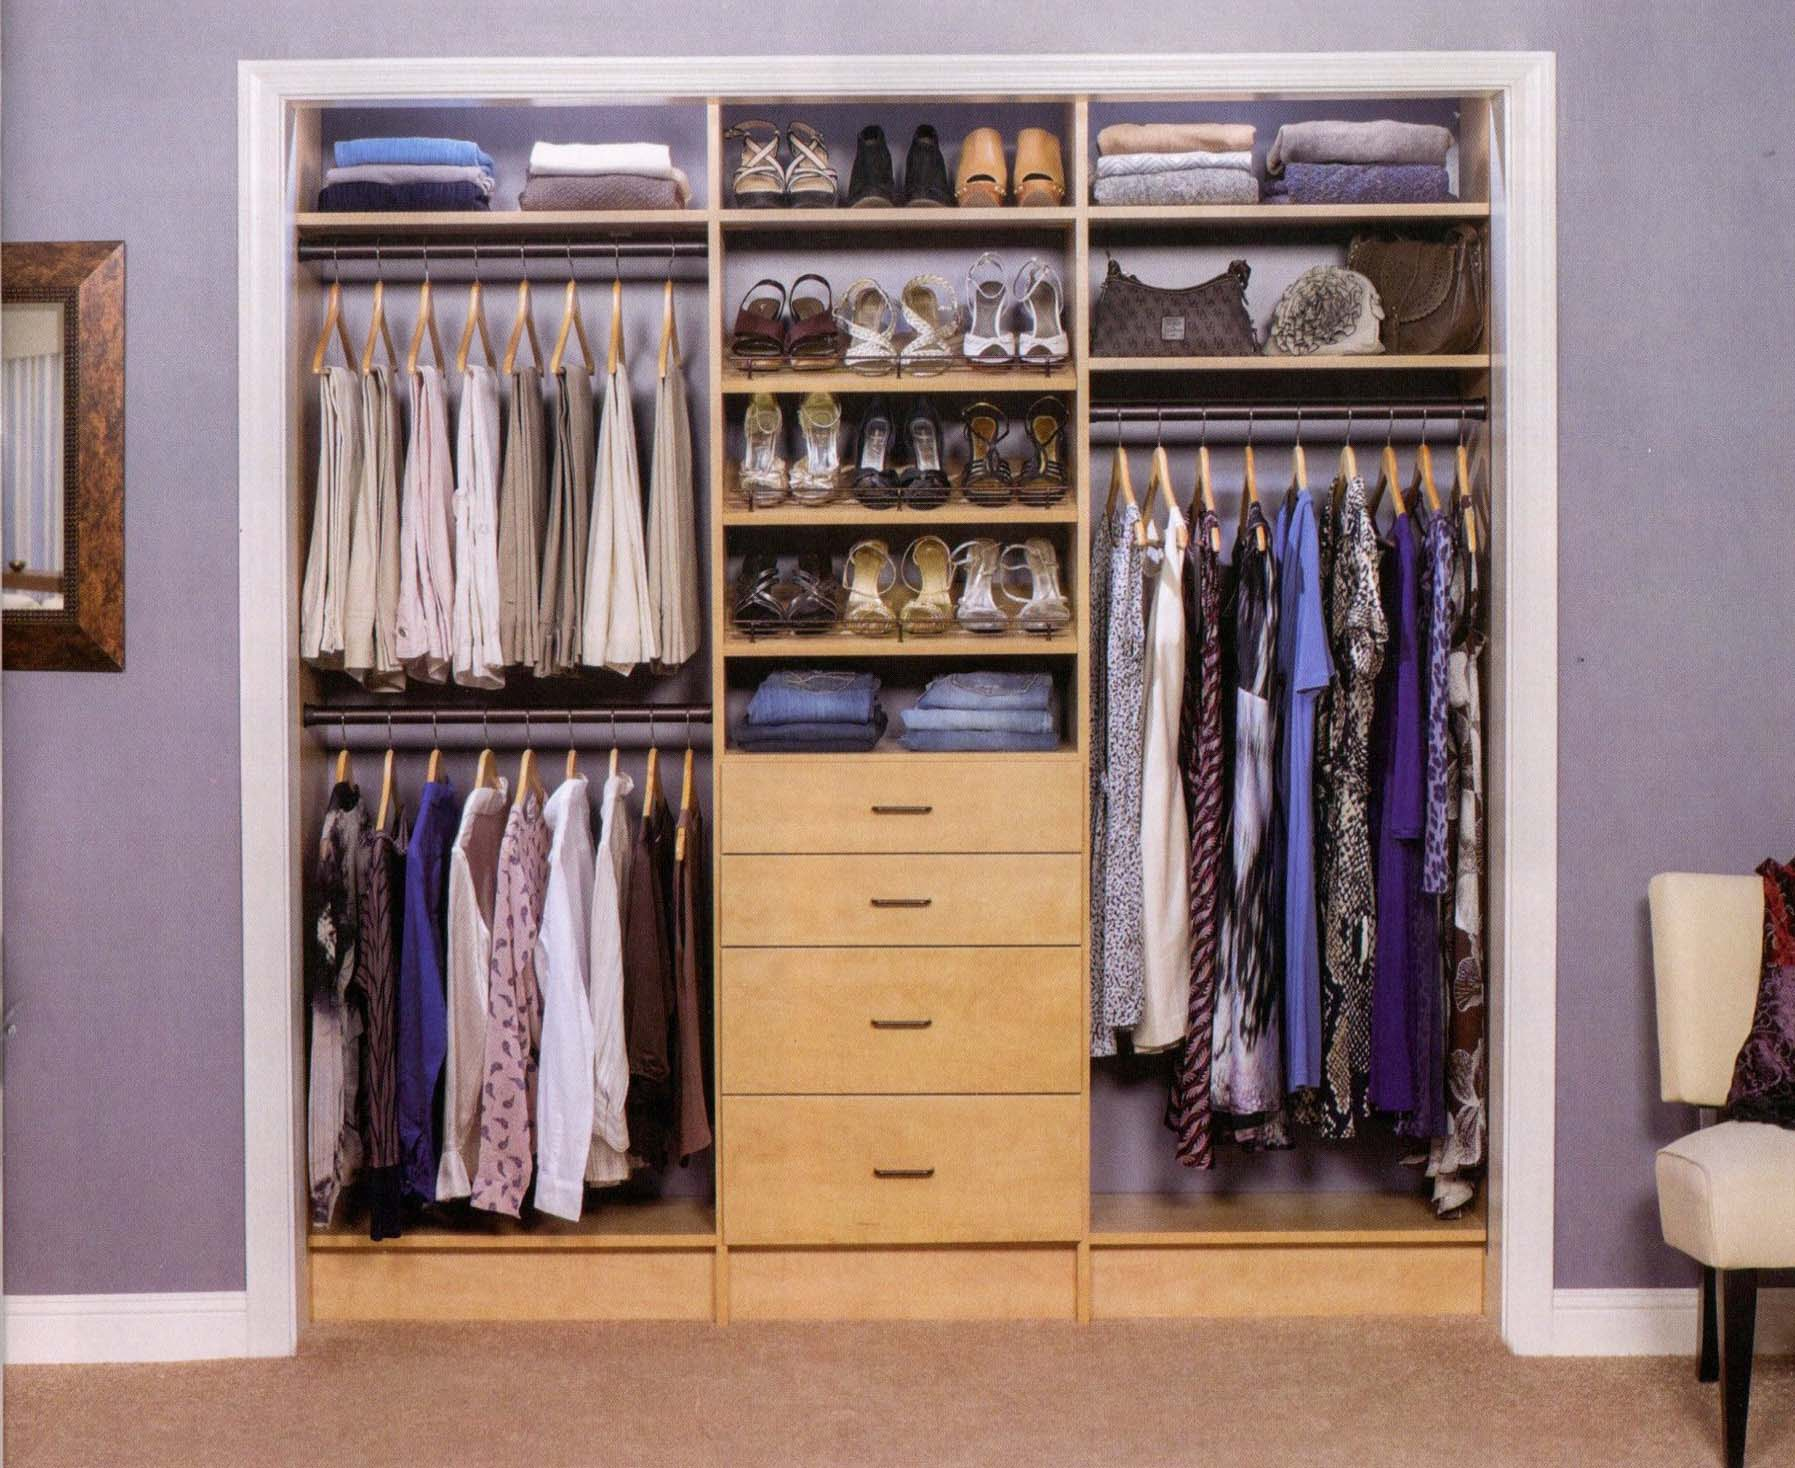 Options Such As Placing Hanging Rods On The Side Walls Of The Closets And  Adding Slide Out Baskets Can Create More Useable Space. Our Adjustable  Shelves And ...